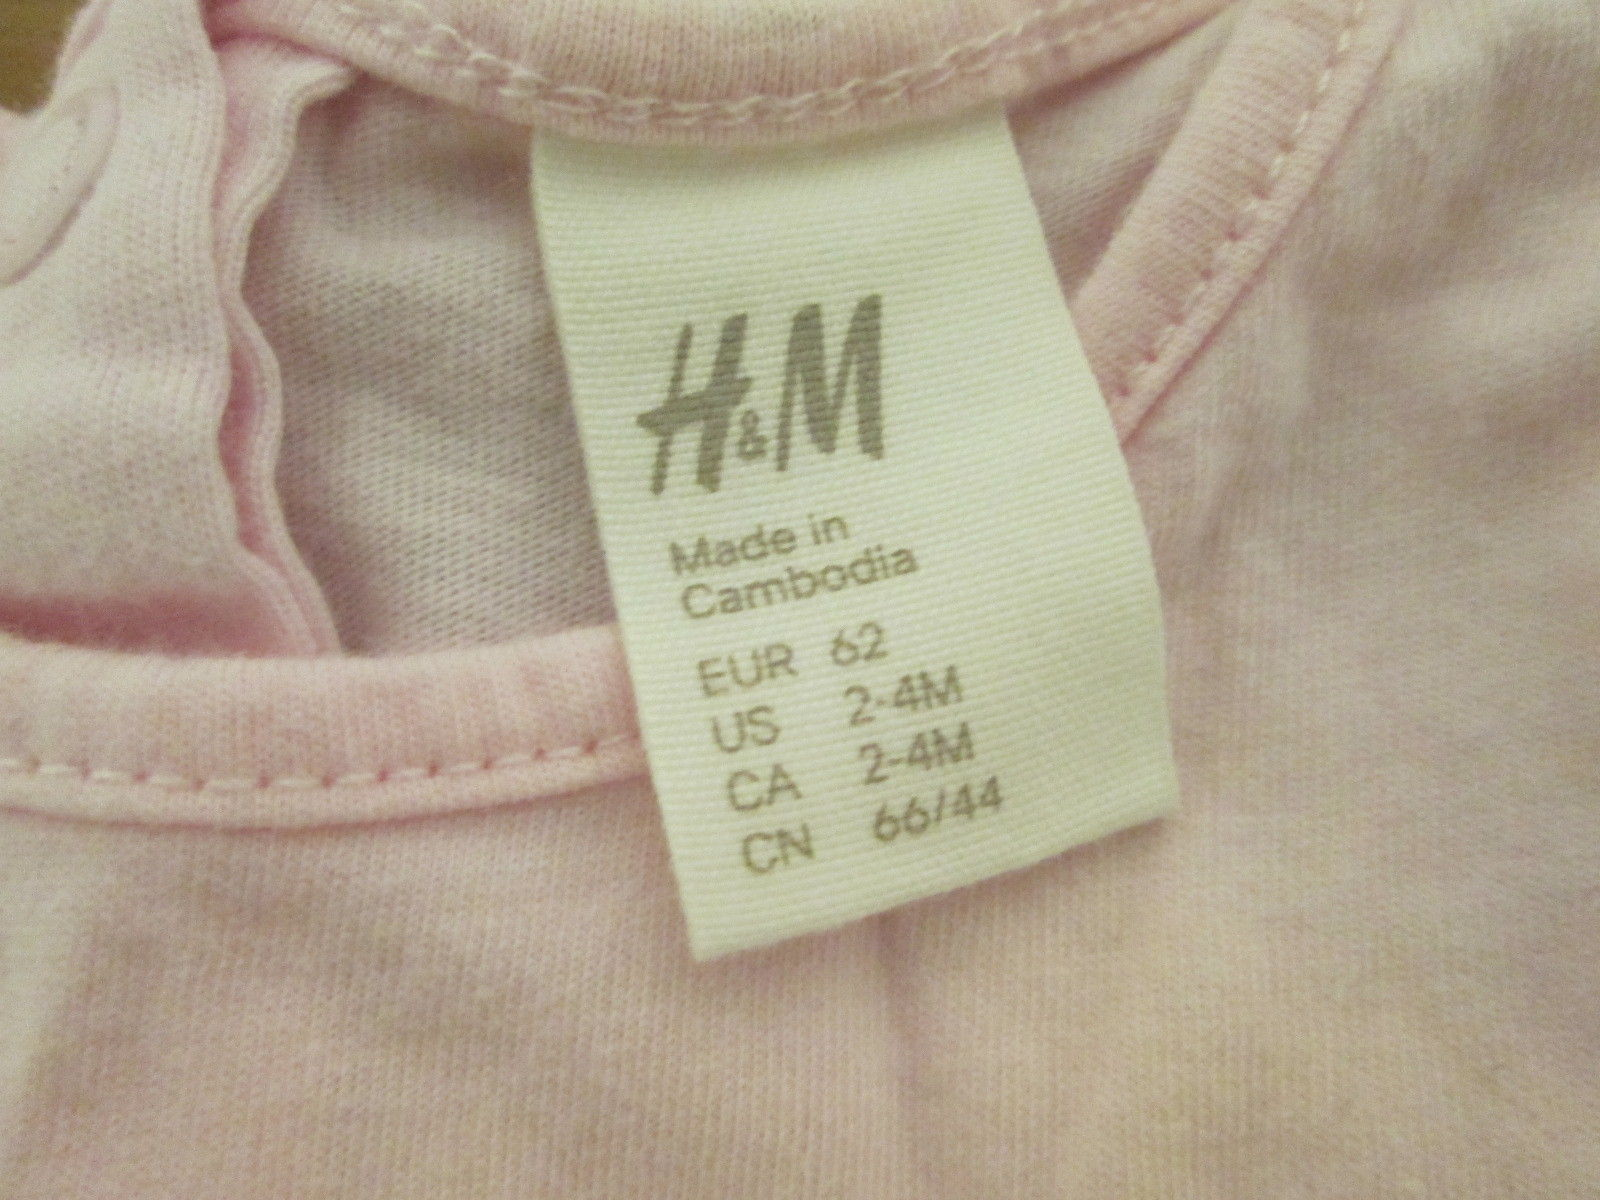 Pretty pink rainbow infant top Size 2-4 mo. by H&M  CHE310